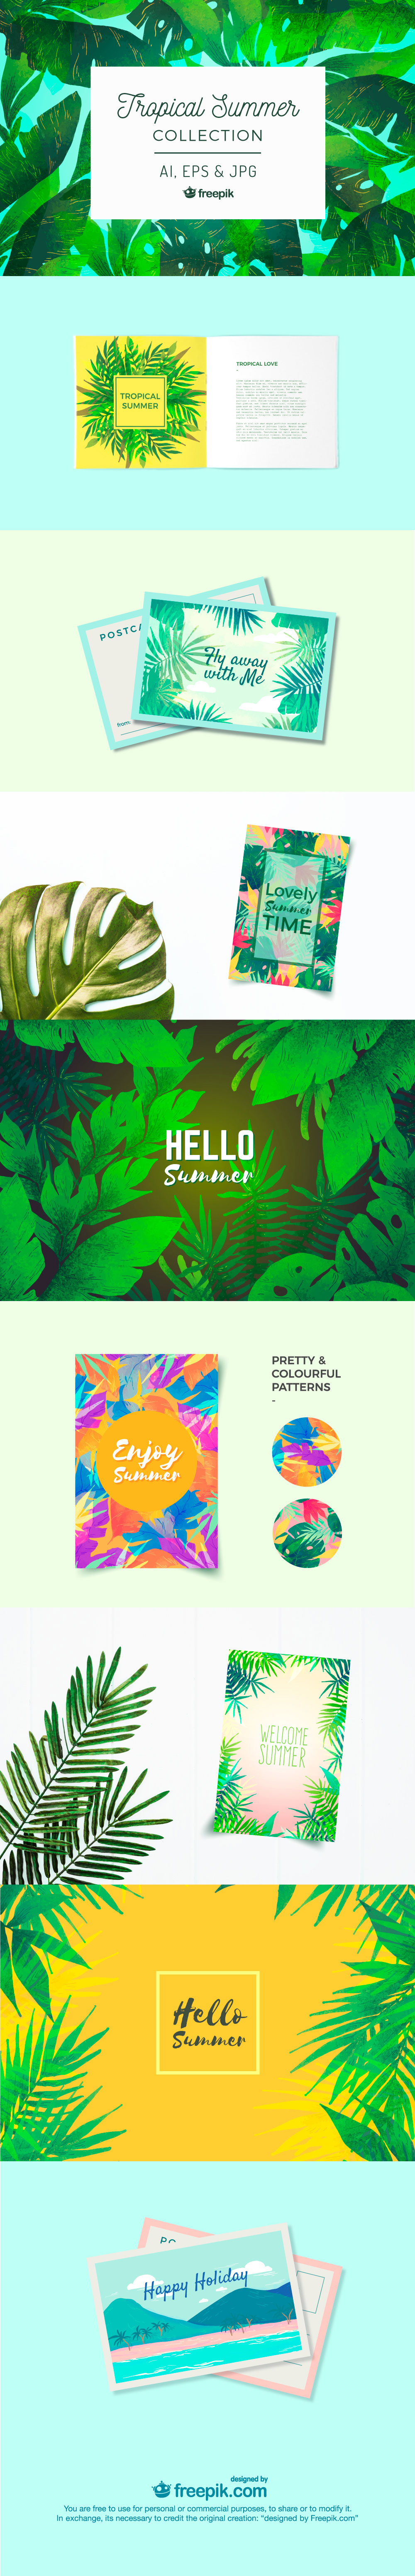 Tropical Summer Collection